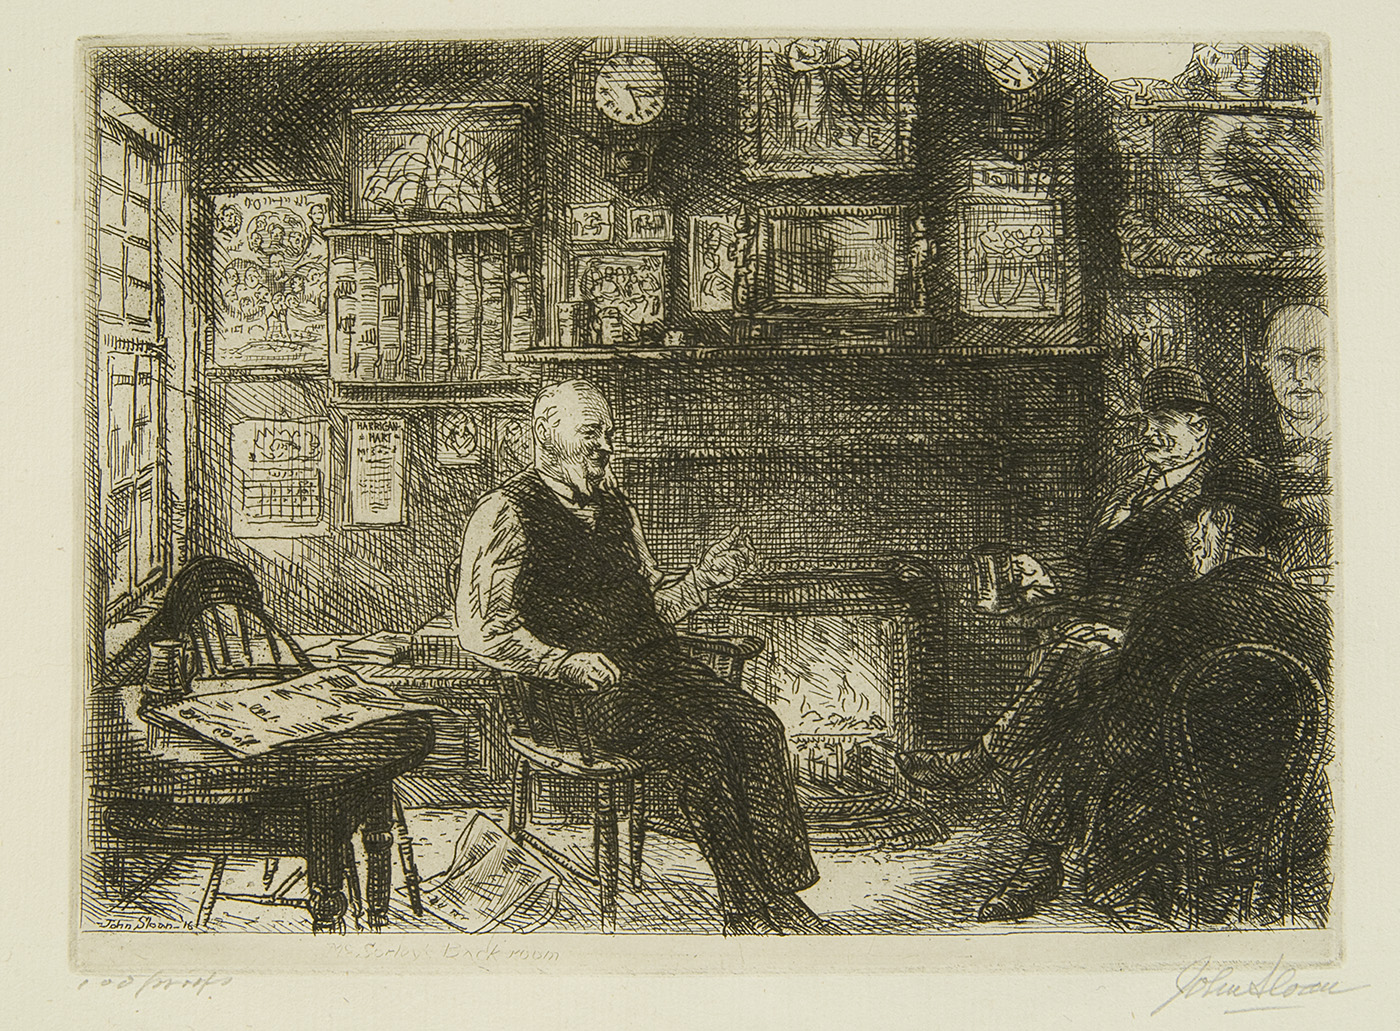 Etching of three men sitting and drinking by a fire